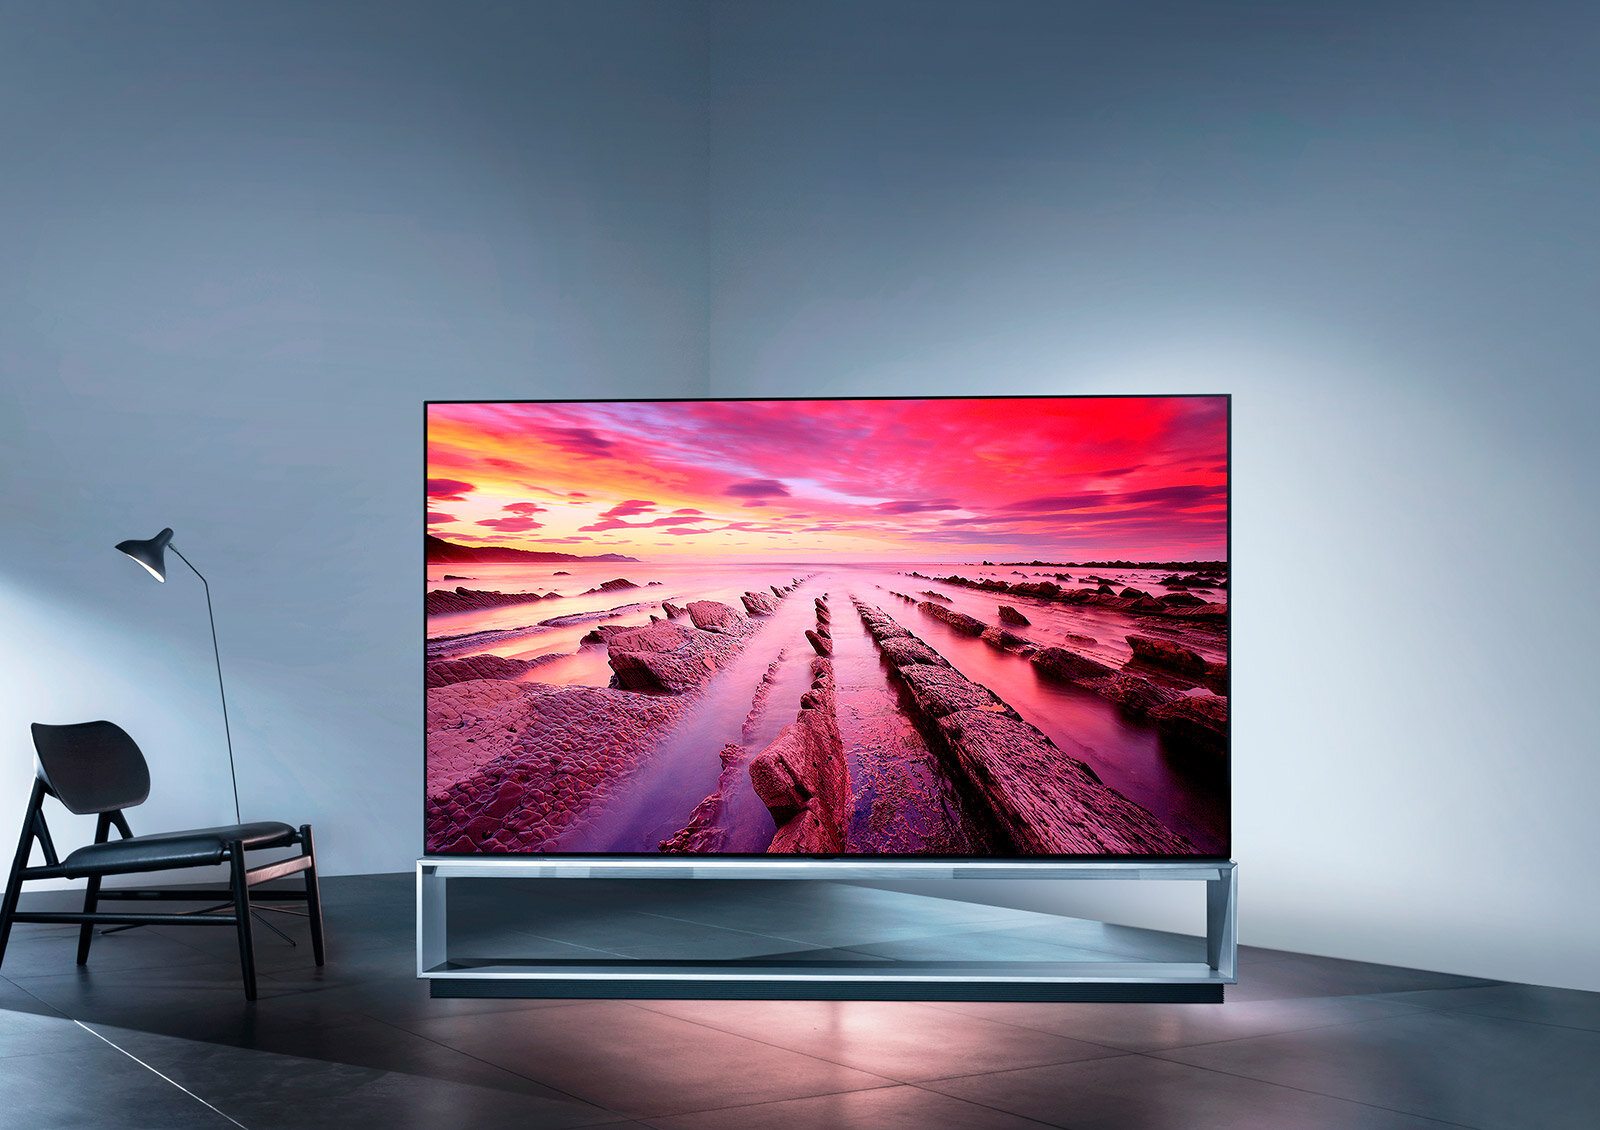 88 Inches — The Largest OLED - The super-sized 88-inch screen is the largest OLED display in existence. Imagine you're in a theater, stadium, or concert hall thanks to a breathtaking view that transports you to the heart of the action.